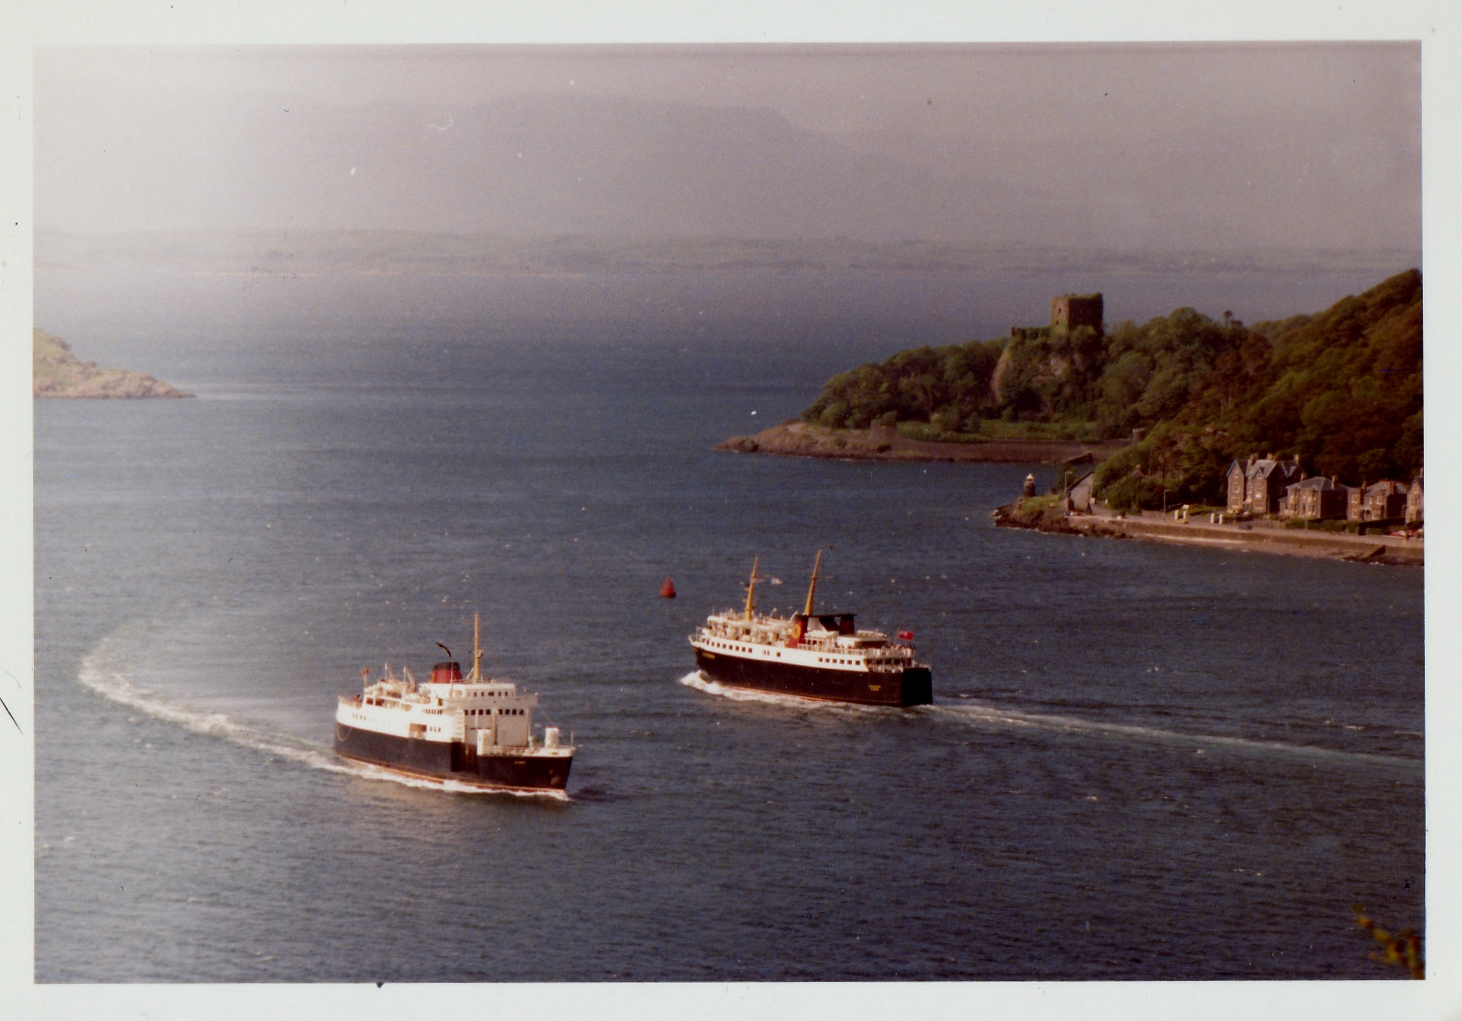 Columba and Caledonia passing in Oban Bay (Jim Aikman Smith)